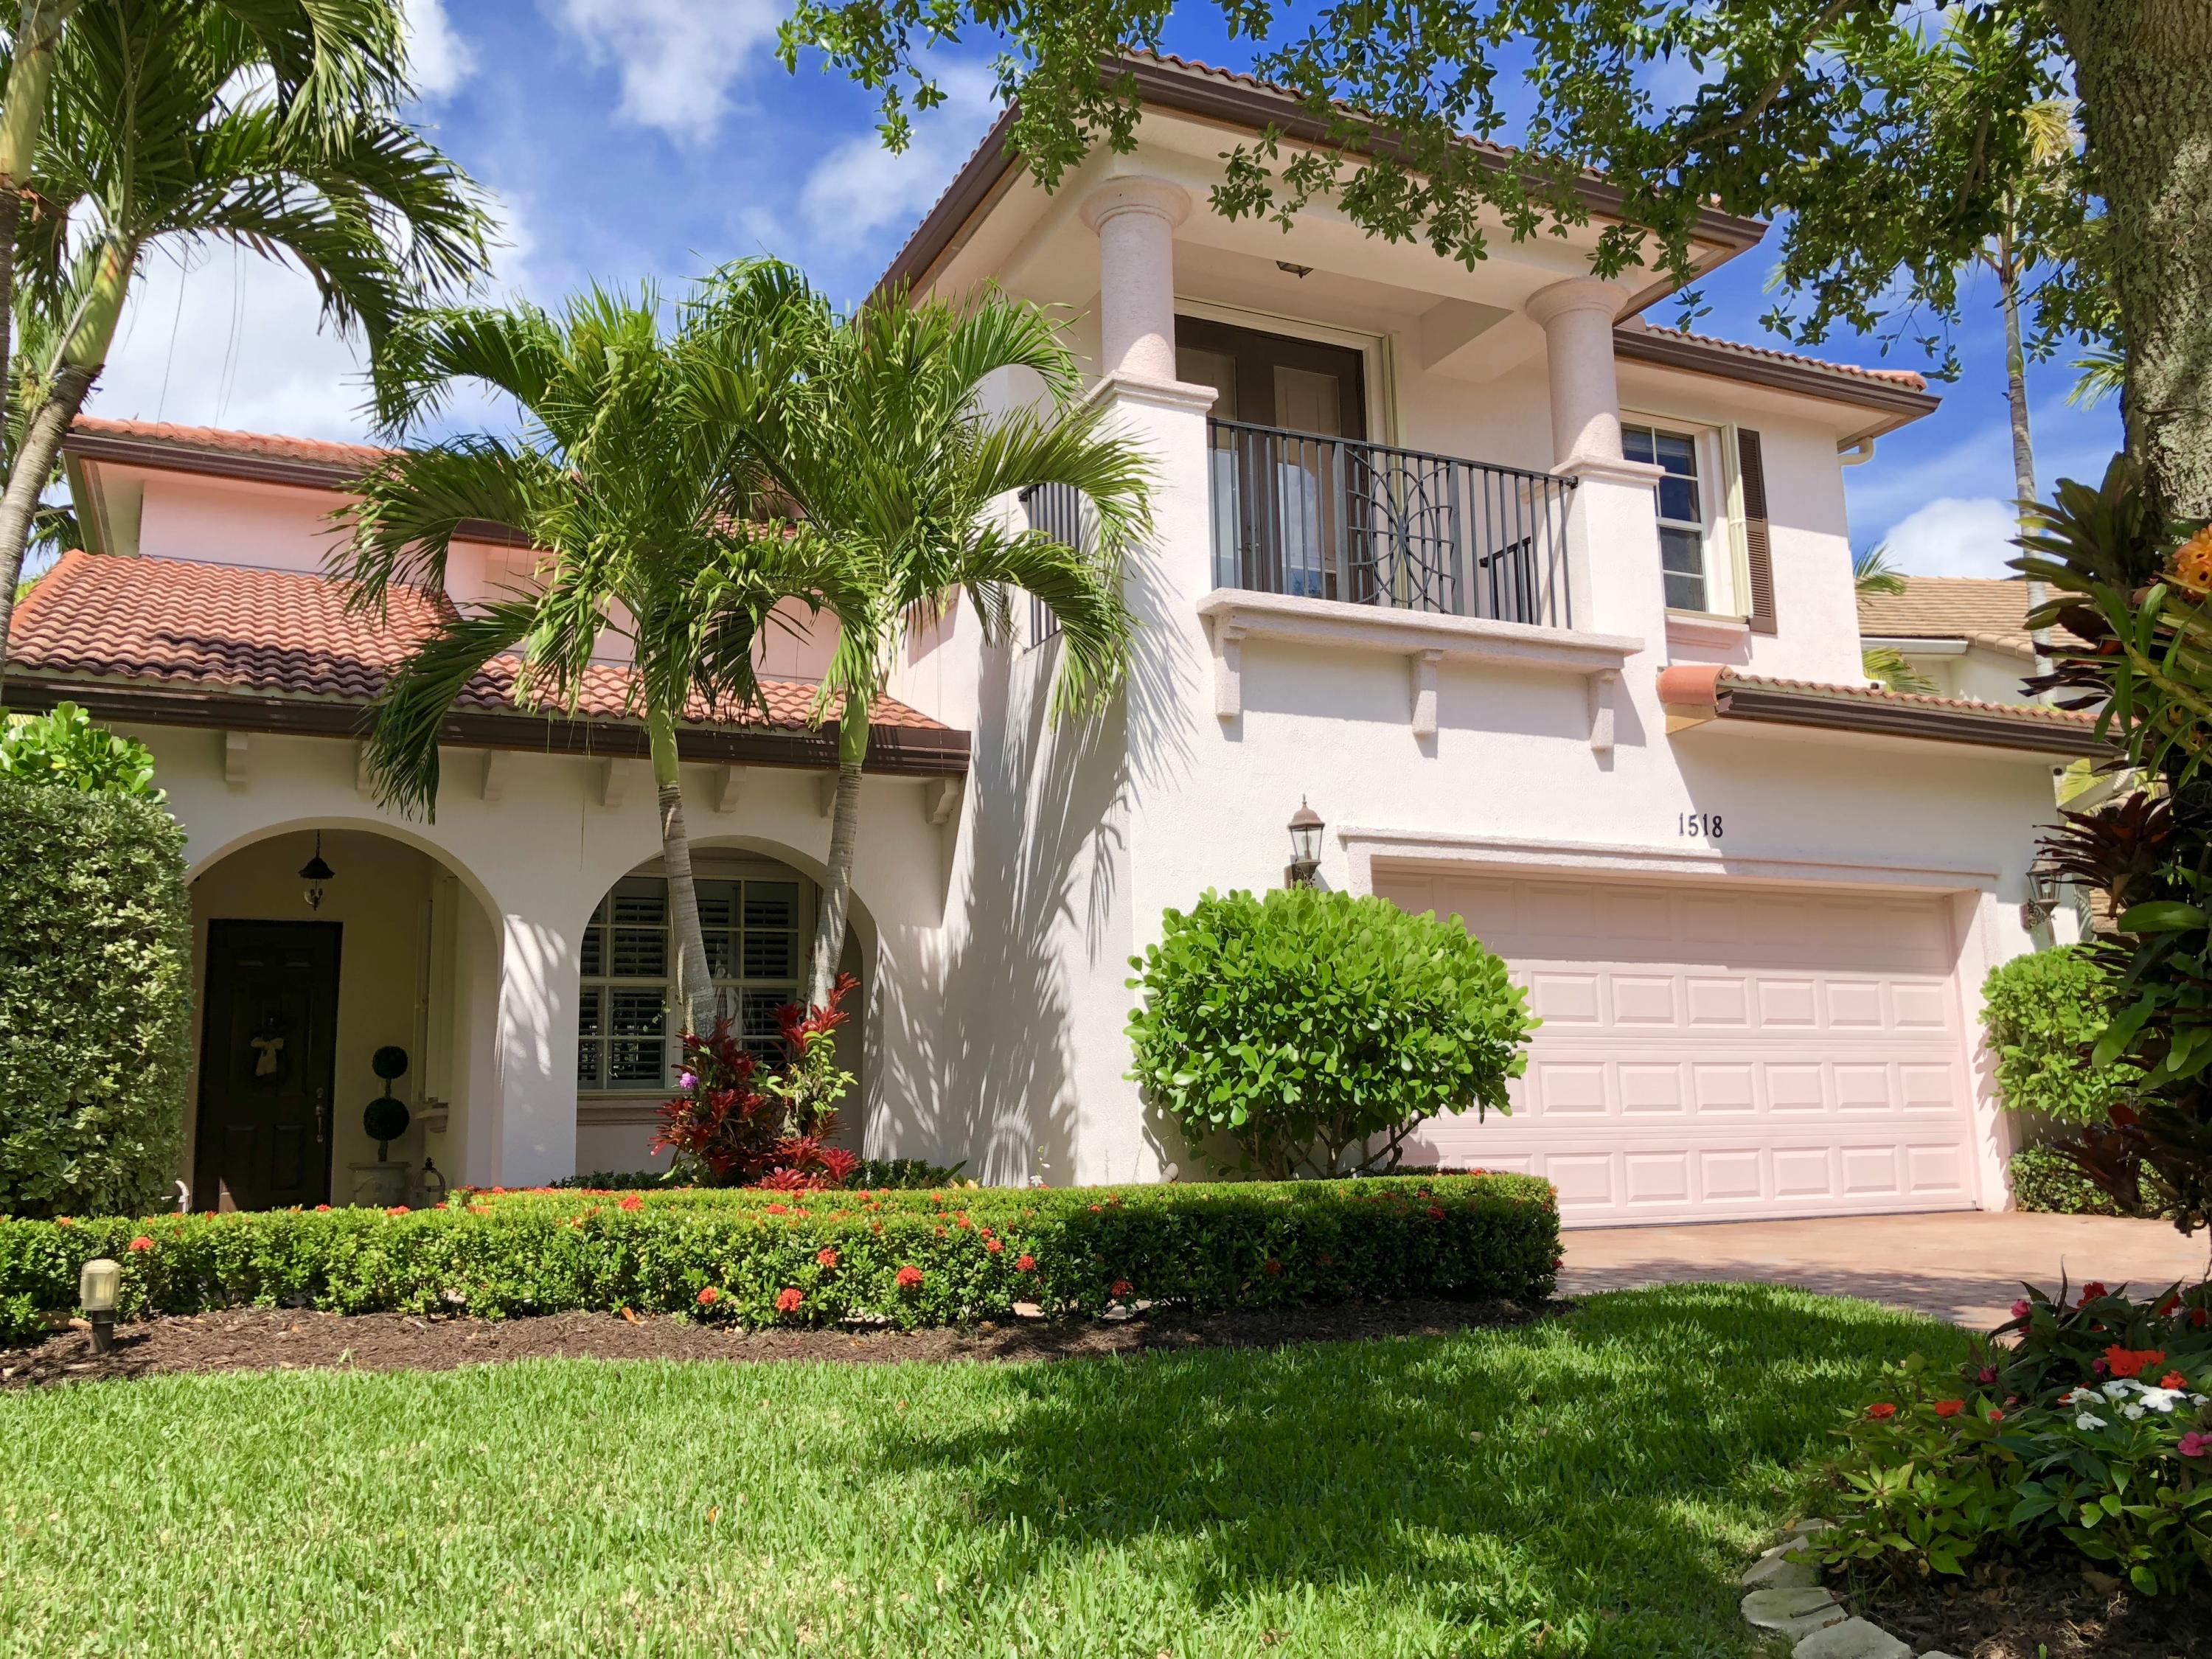 1518 Carafe Court, Palm Beach Gardens, Florida 33410, 3 Bedrooms Bedrooms, ,3 BathroomsBathrooms,Single Family,For Sale,Carafe,RX-10519708